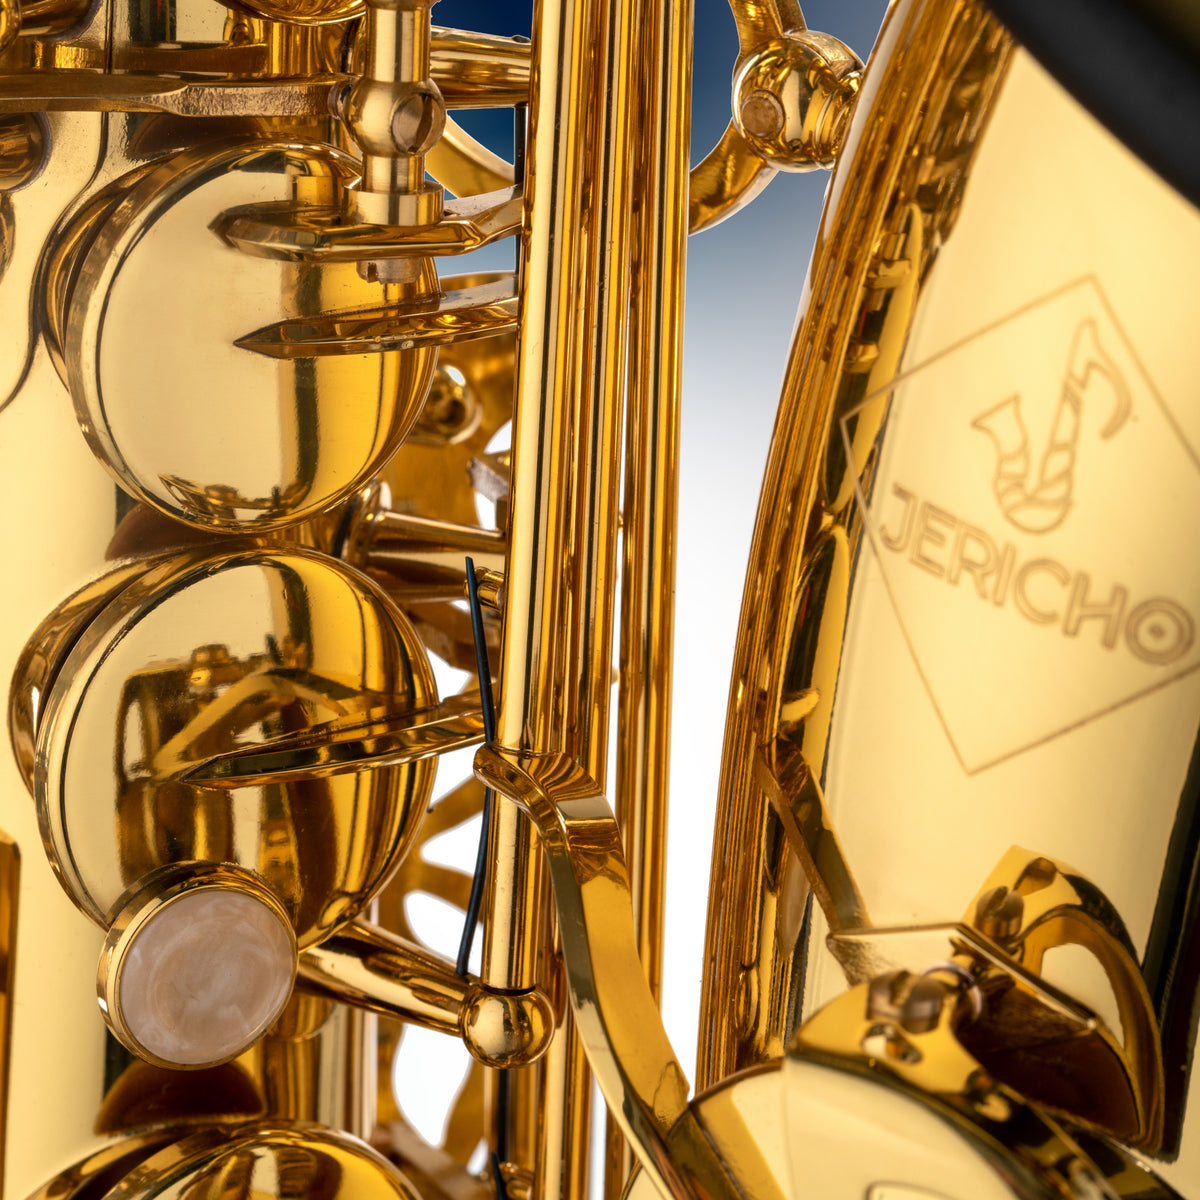 Jericho Saxophones| Shop the Jericho range of student level saxophones